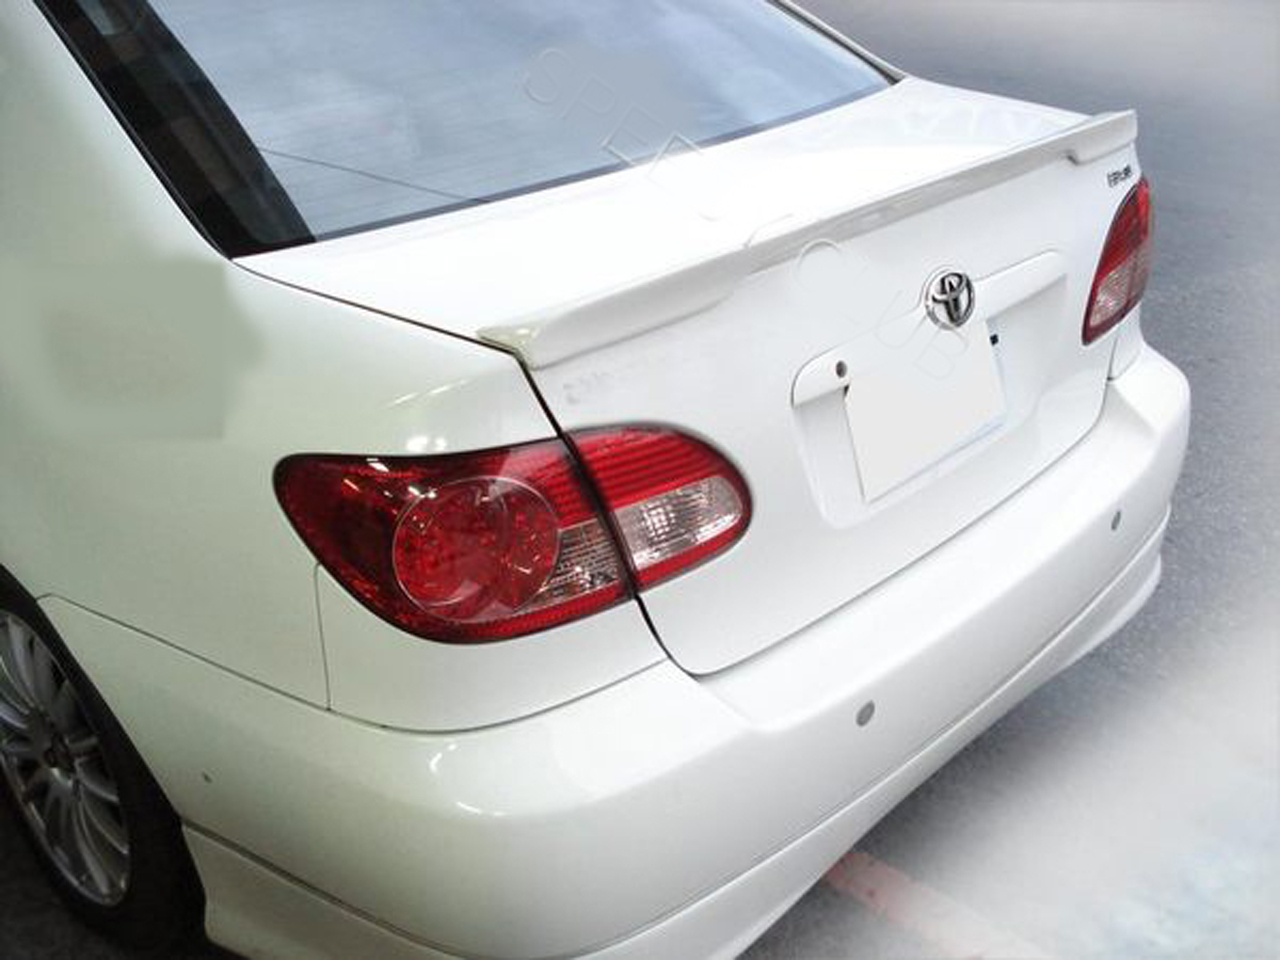 toyota corolla altis trunk deck lip spoiler oe type sedan 2002 2008 ebay details about toyota corolla altis trunk deck lip spoiler oe type sedan 2002 2008